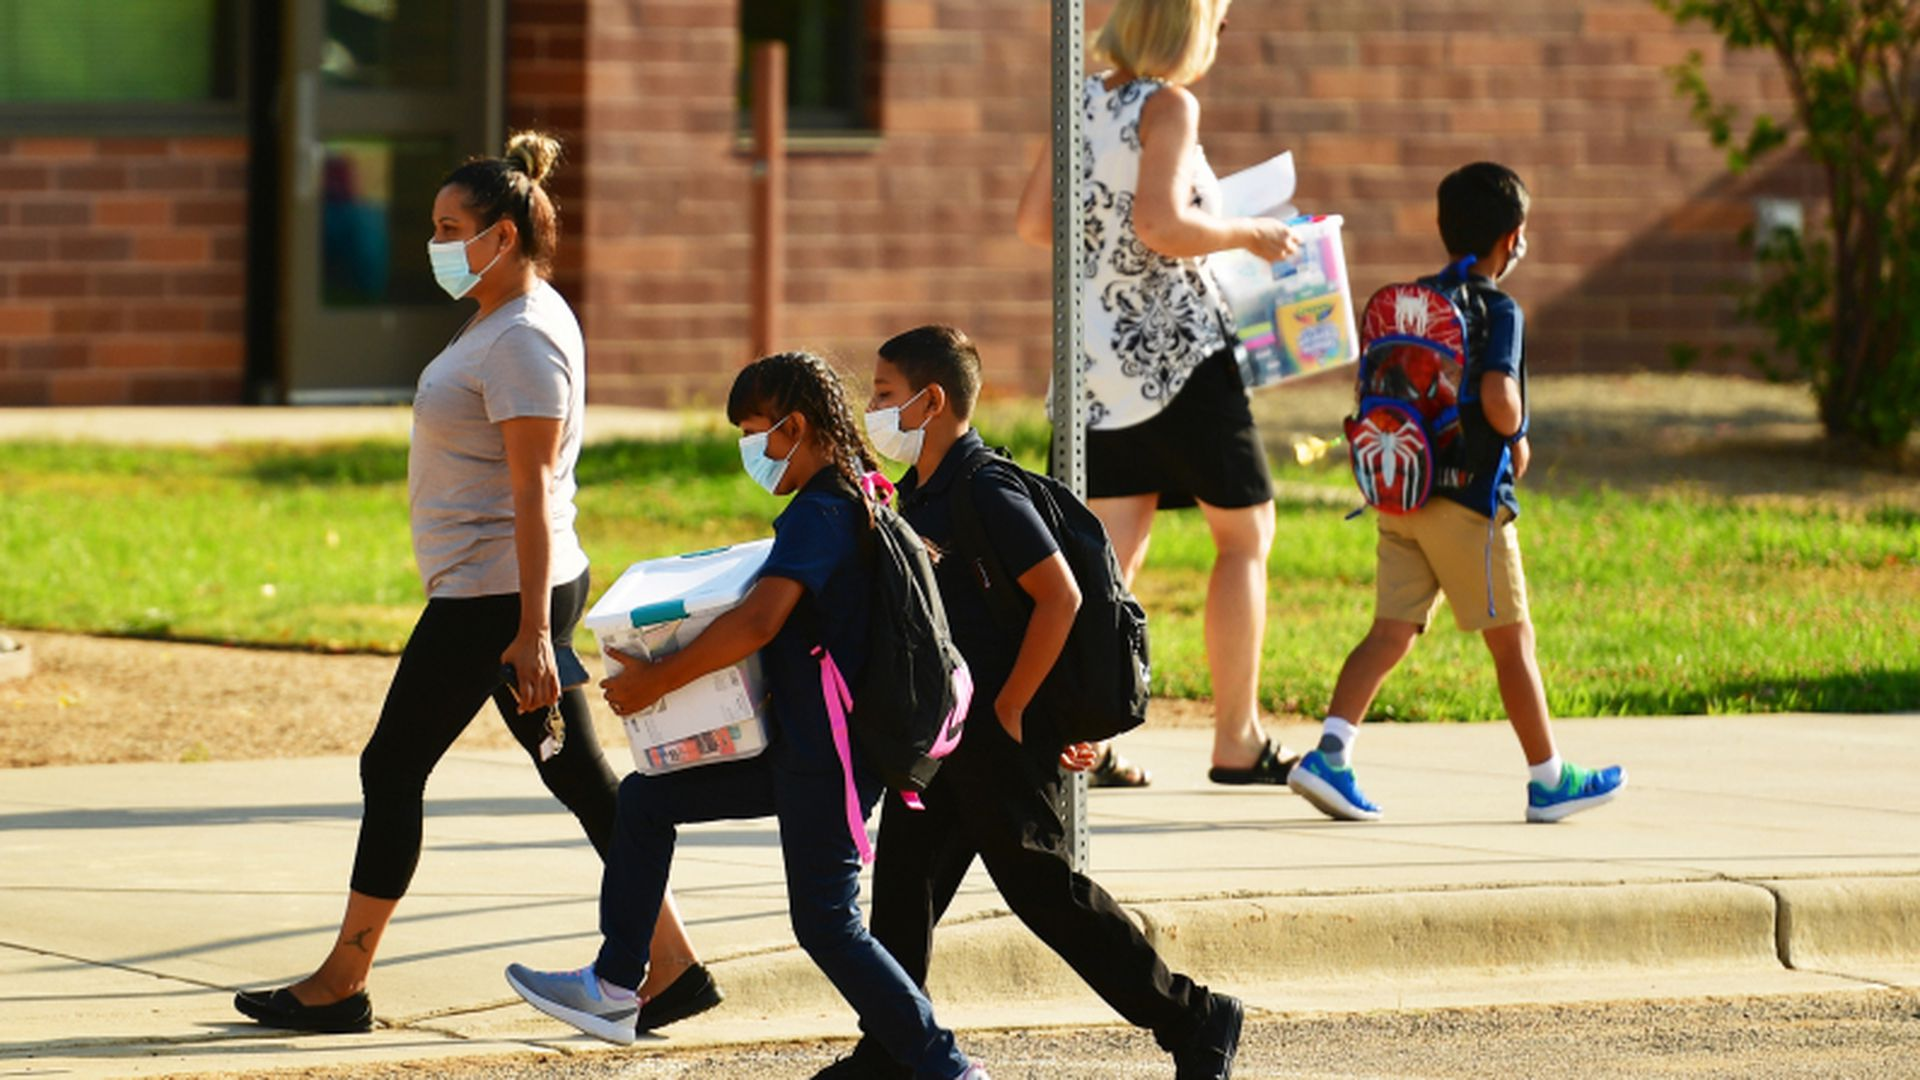 Parents and students wearing masks walk to school